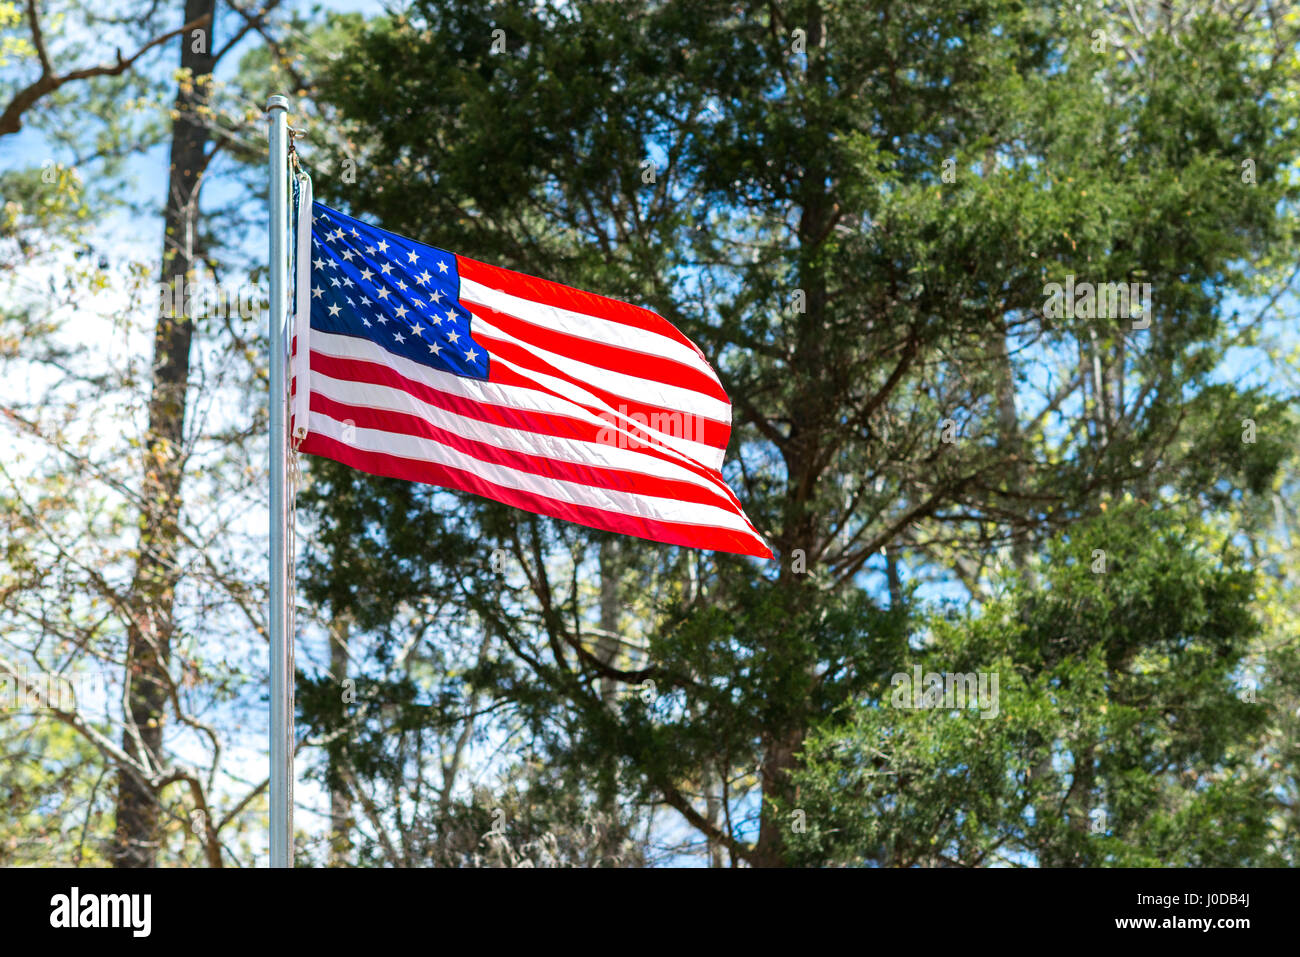 American flag blowing in wind on a spring day in the woods. Stock Photo